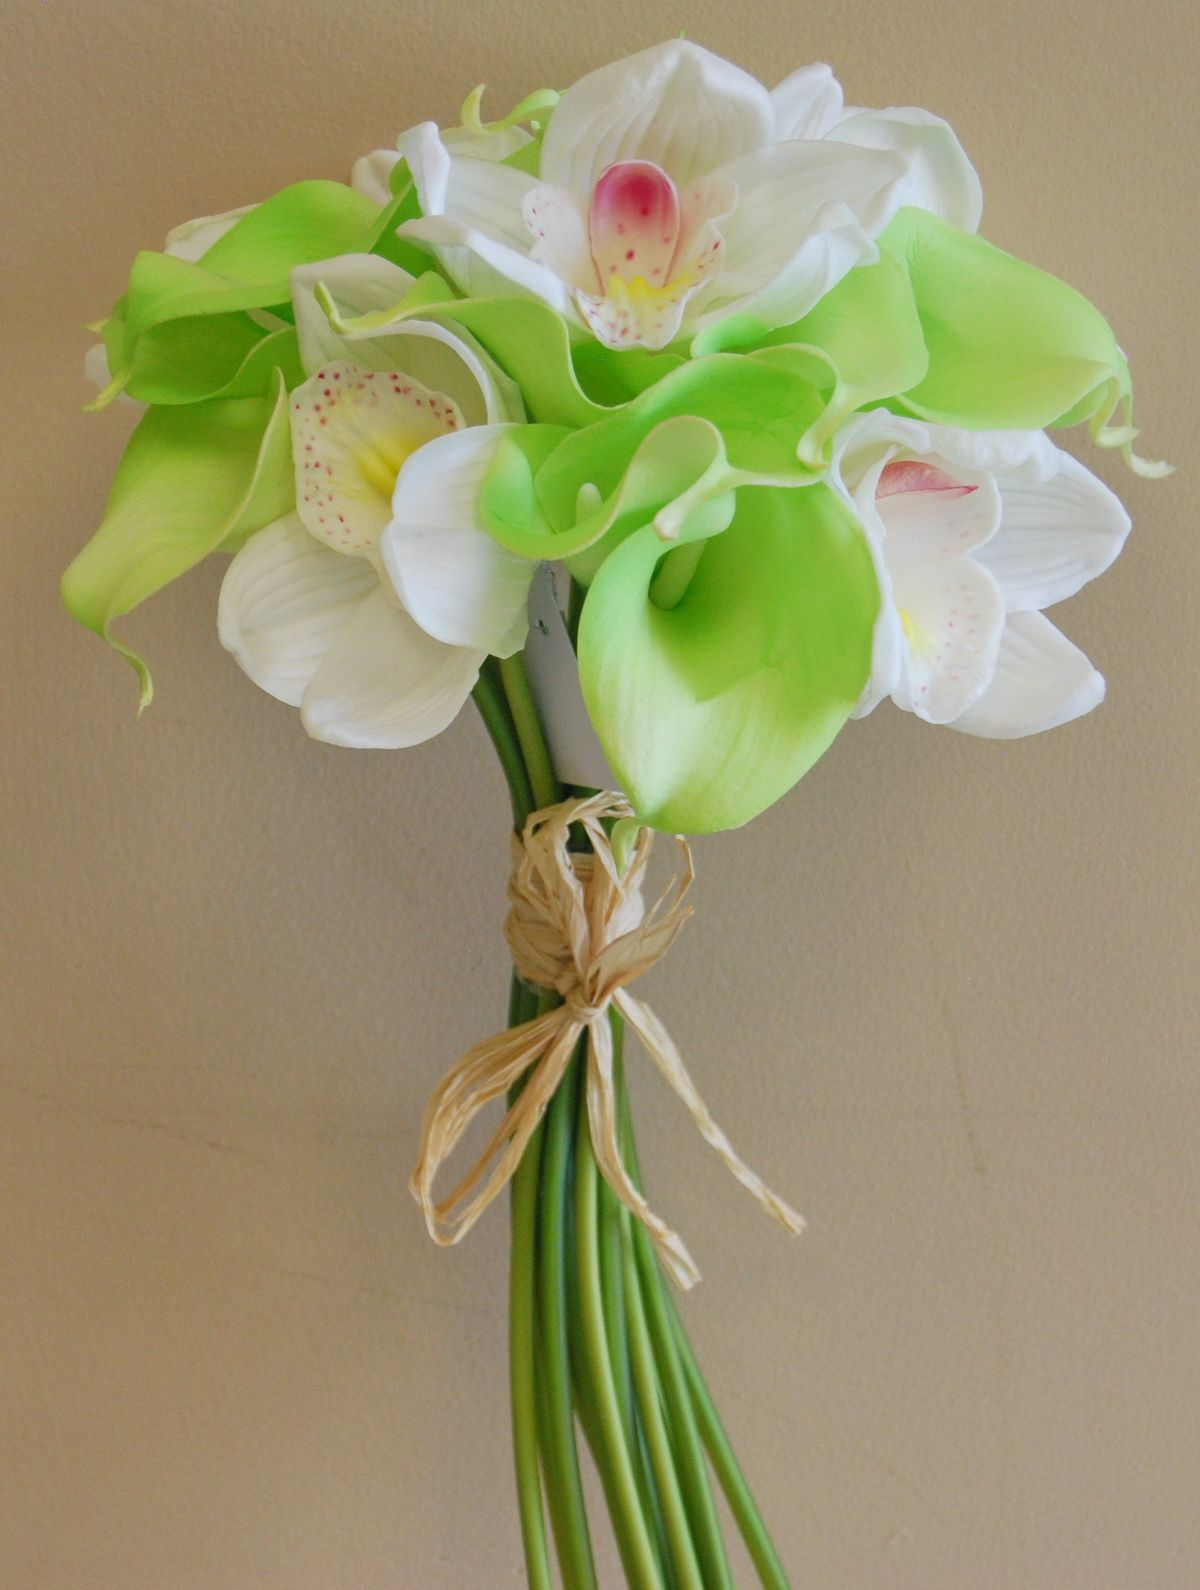 Wb183wg real touch calla lily cymbidium orchid bouquet white wb183wg real touch calla lily cymbidium orchid bouquet white green izmirmasajfo